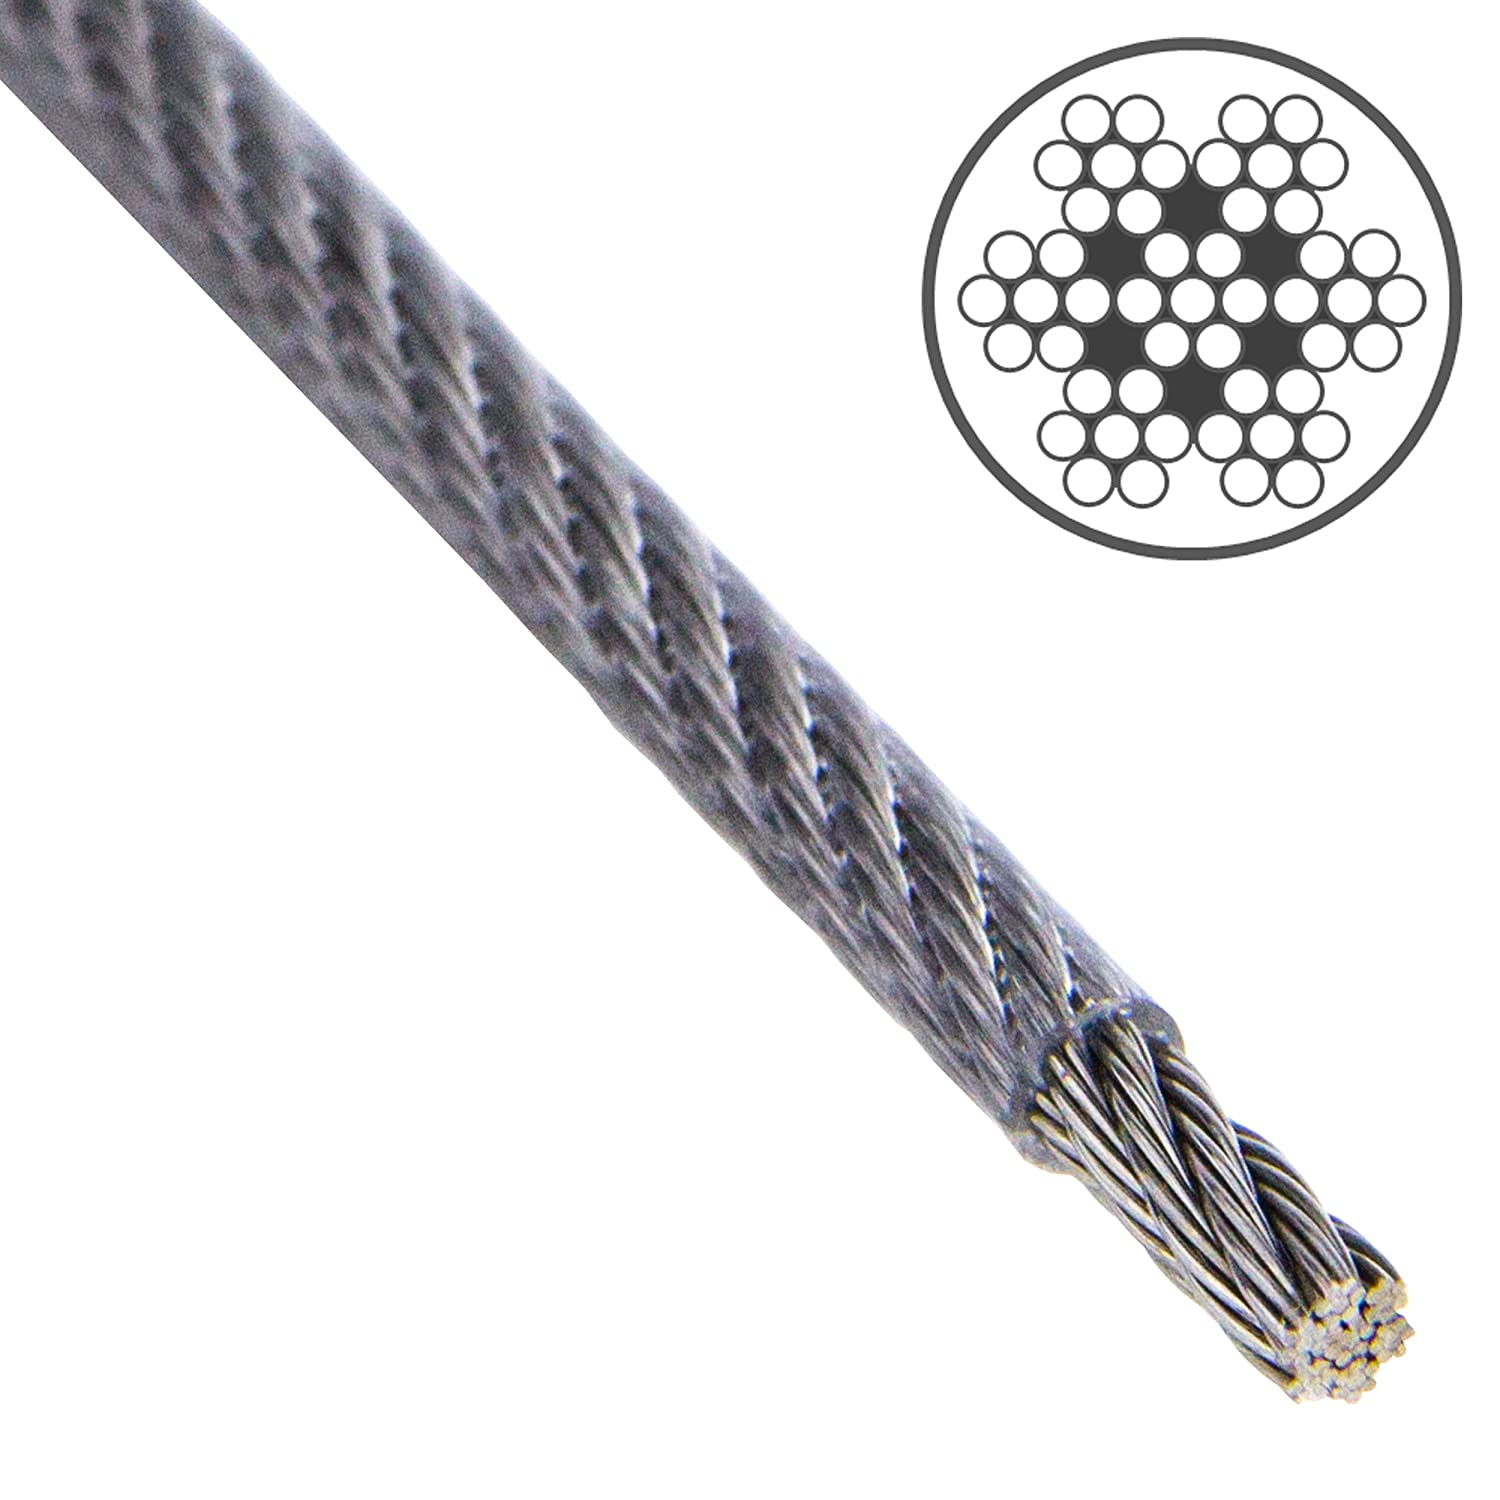 Opiol Quality |drahtseil 7  x 7  Wire Rope PVC Coated, Clear  –   A4  Stainless Steel 10  Metre | Stainless Steel | Steel | Handrail Rope Wire Rope